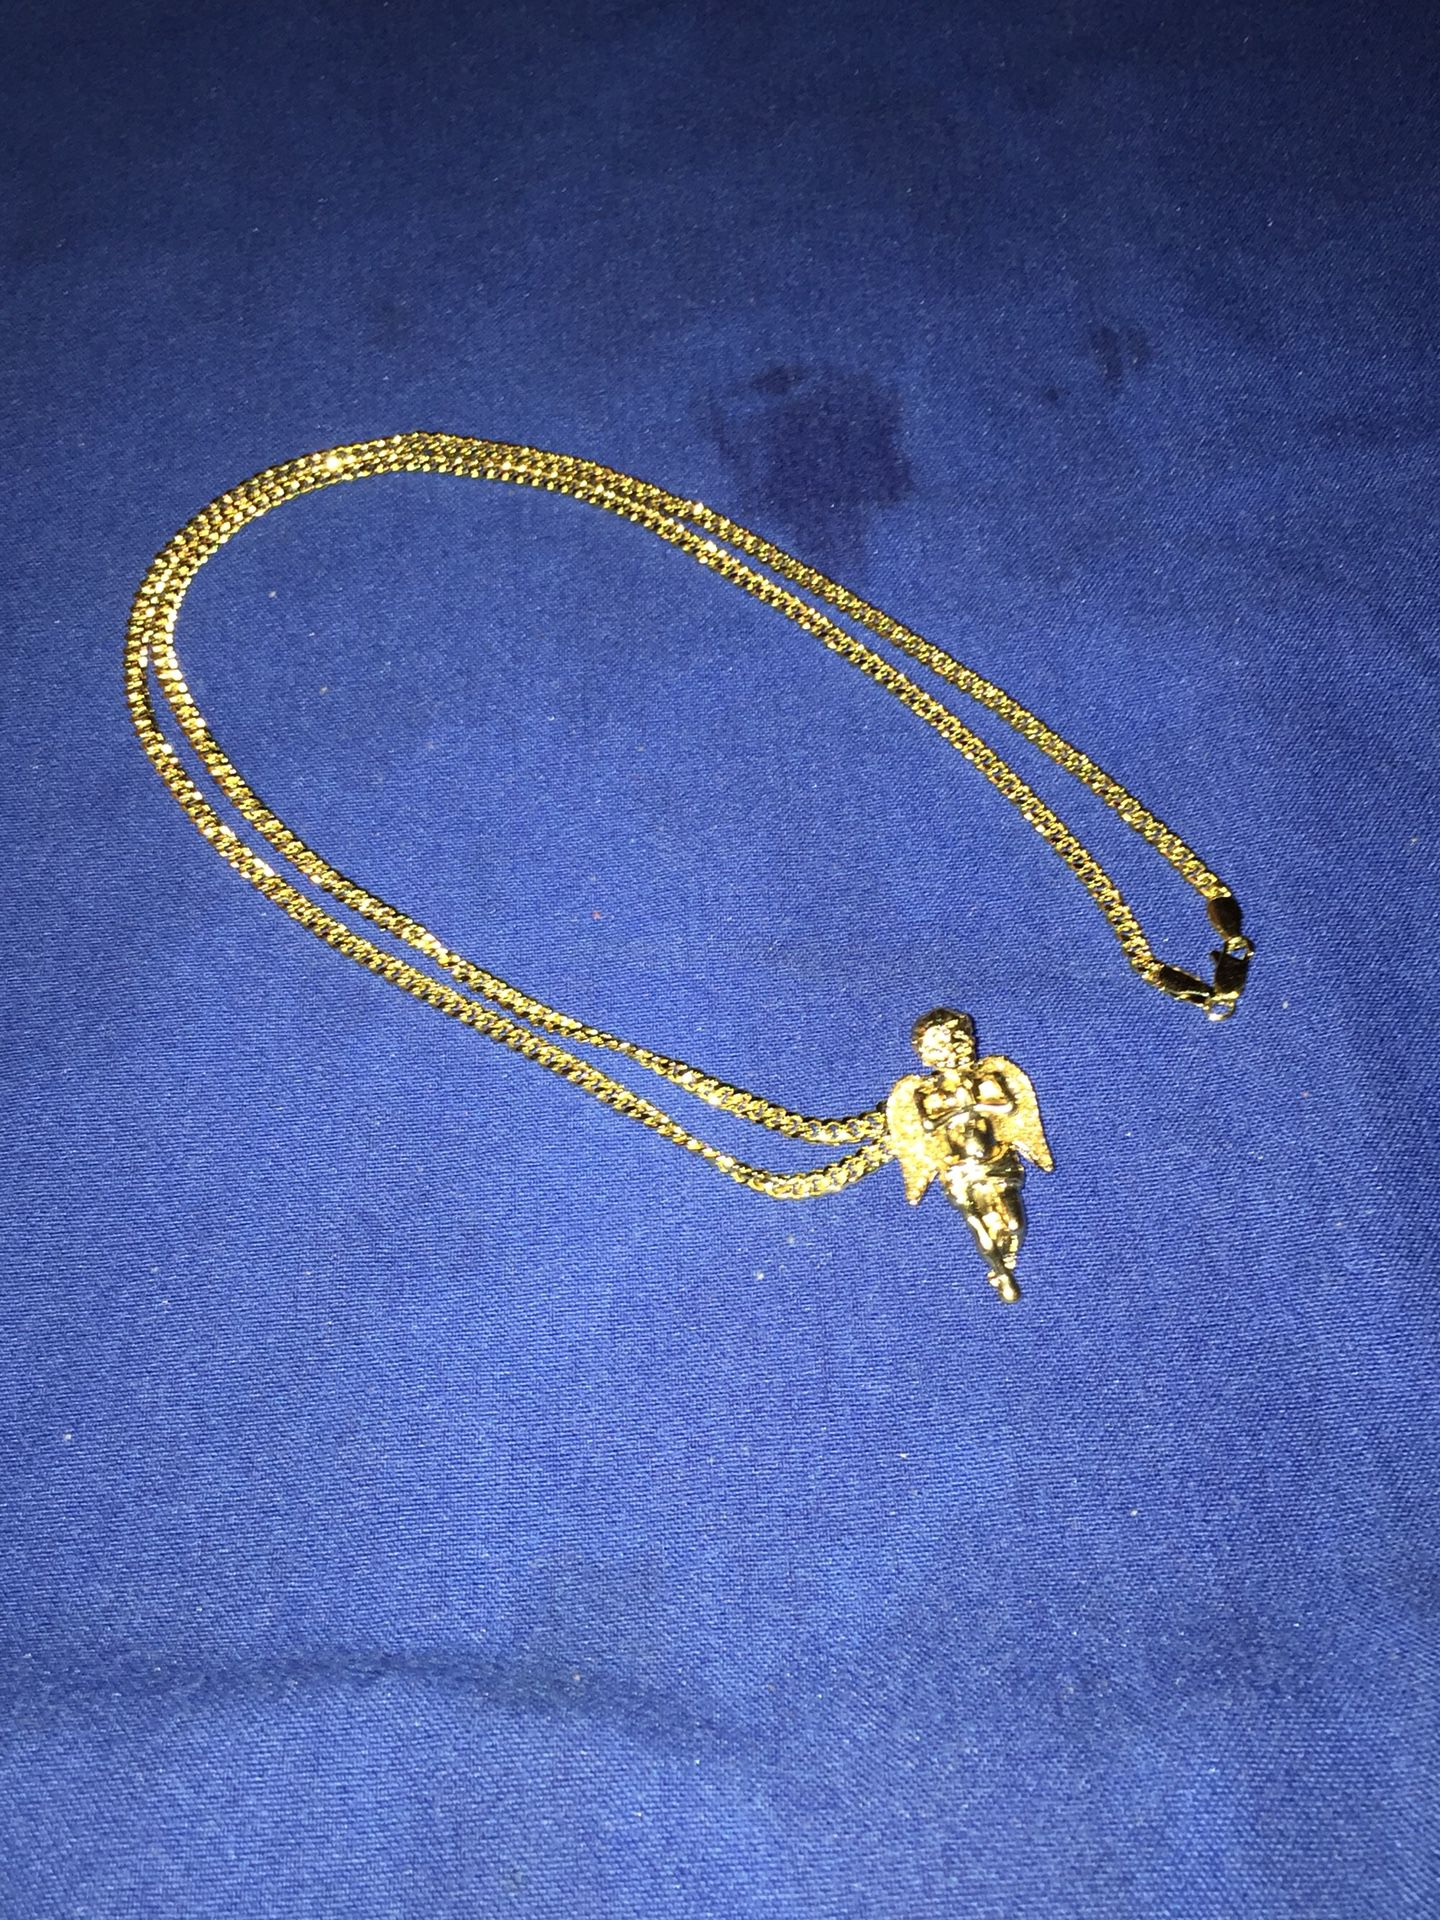 """22Inch 14K Gold Chain W/ Angel pendent"""""""